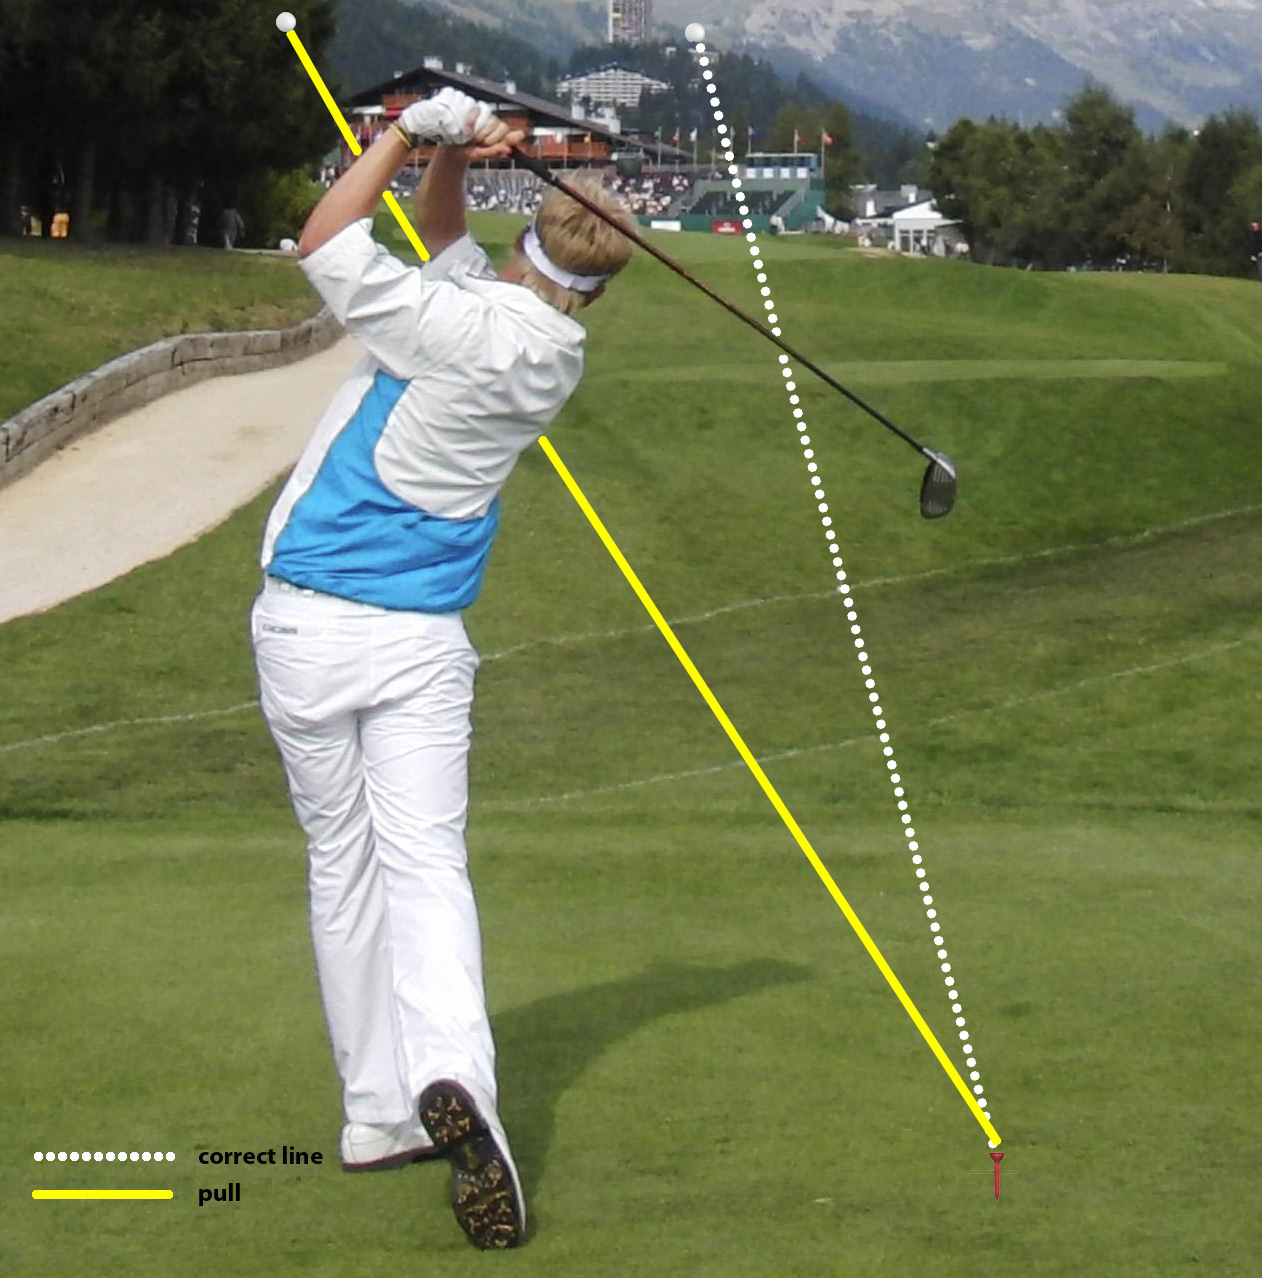 Fig.1 - A pull shot may occur due to aligmnent or poor set up, so check out our quick fixes